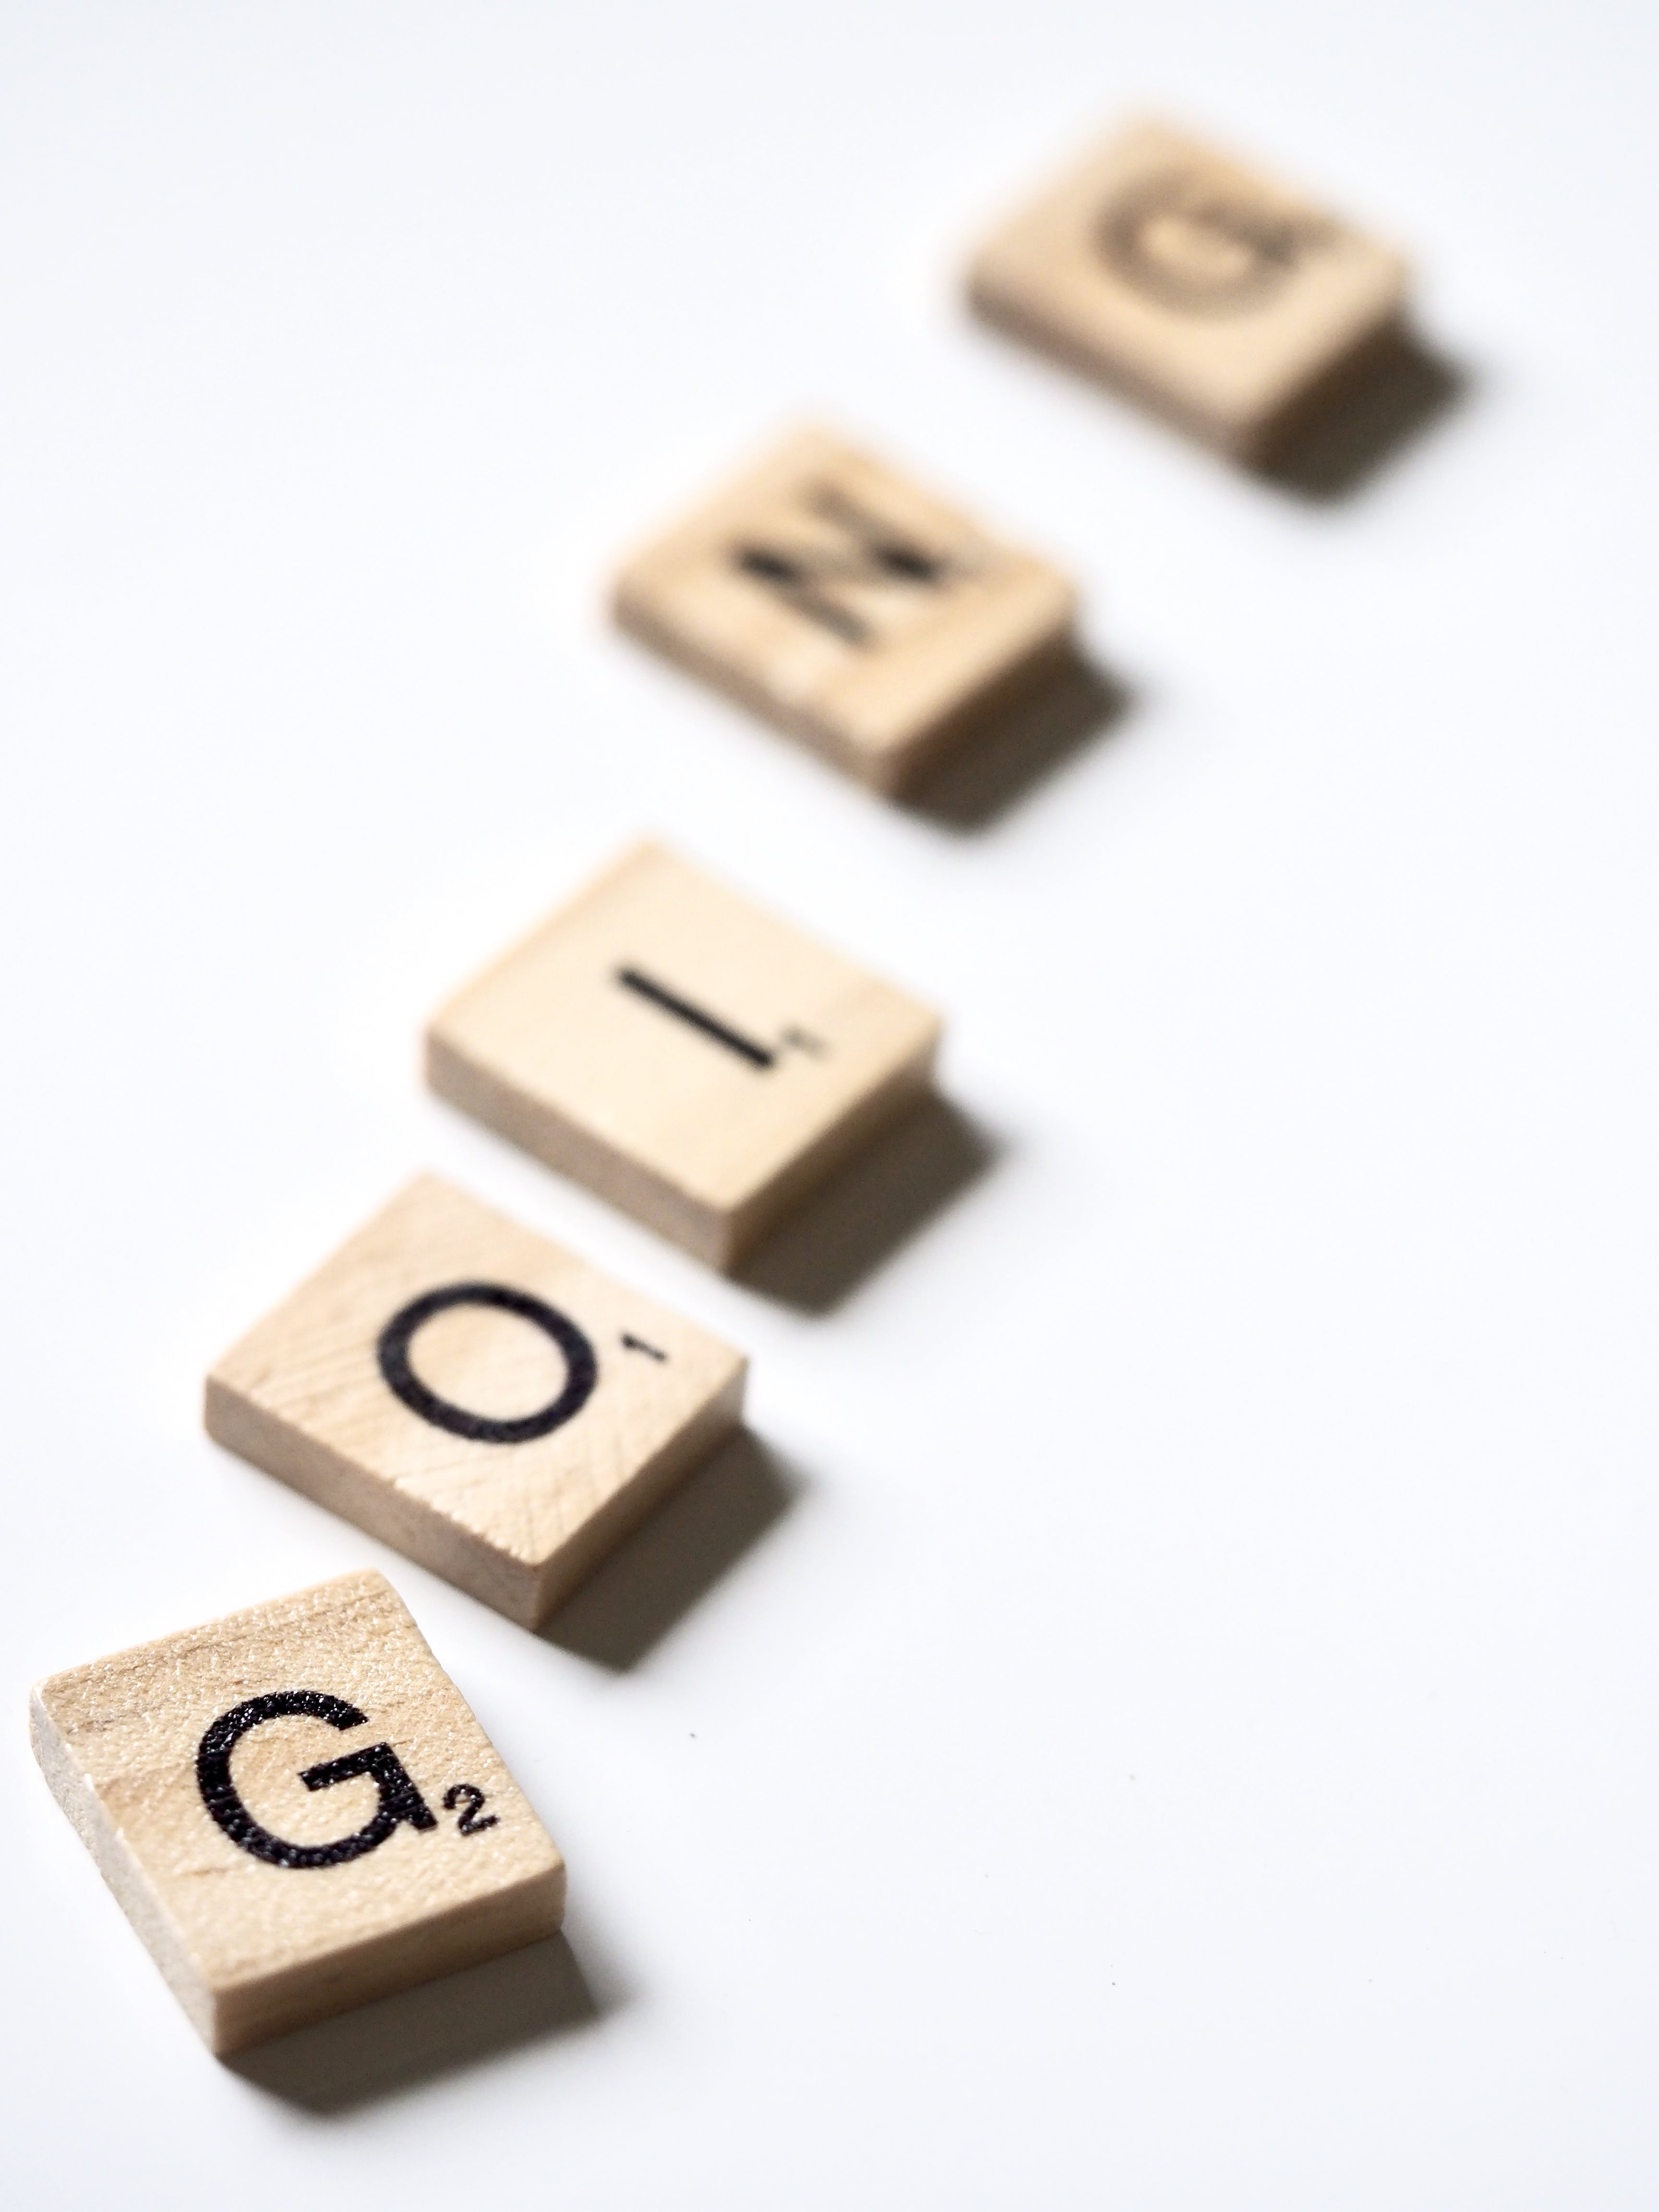 Scrabble Letters Forming the Word Going